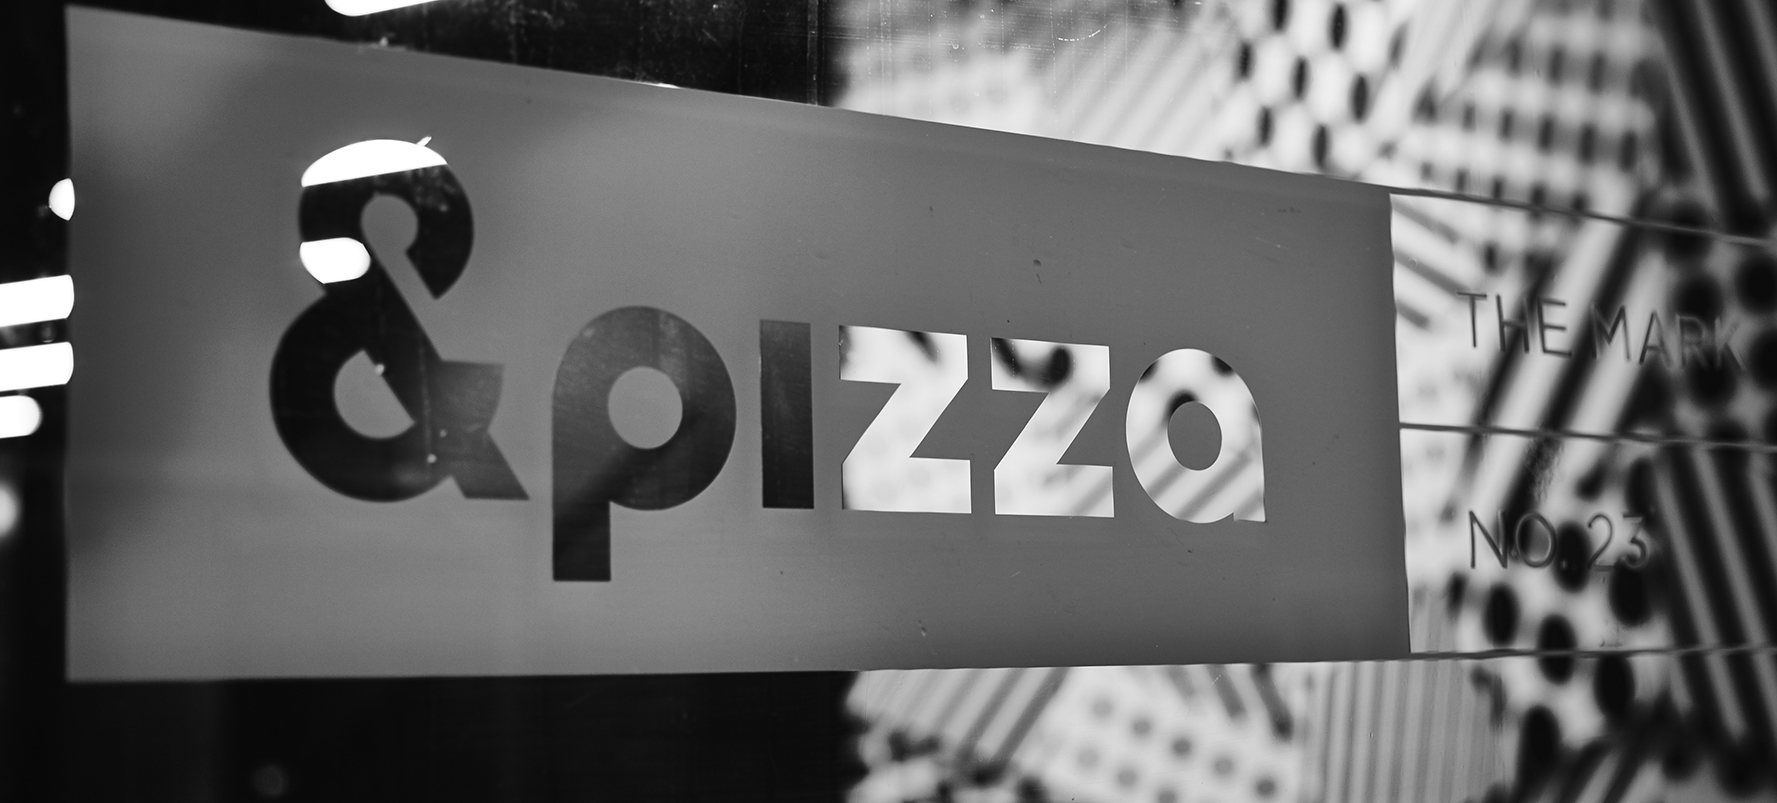 &pizza Uses Employee Engagement to Strengthen Store Design